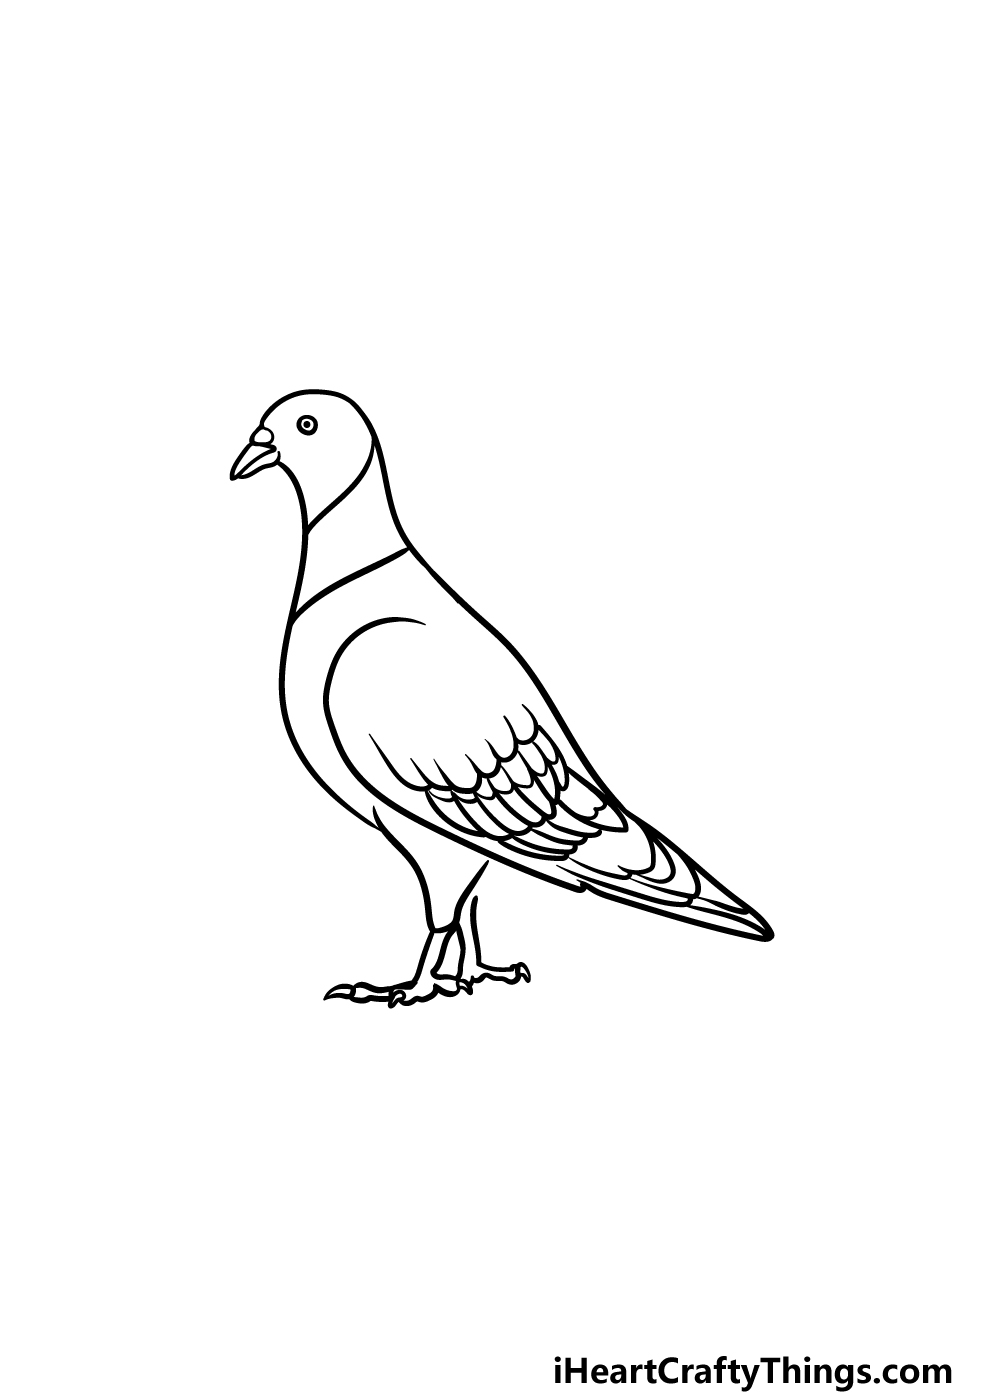 drawing a pigeon step 4